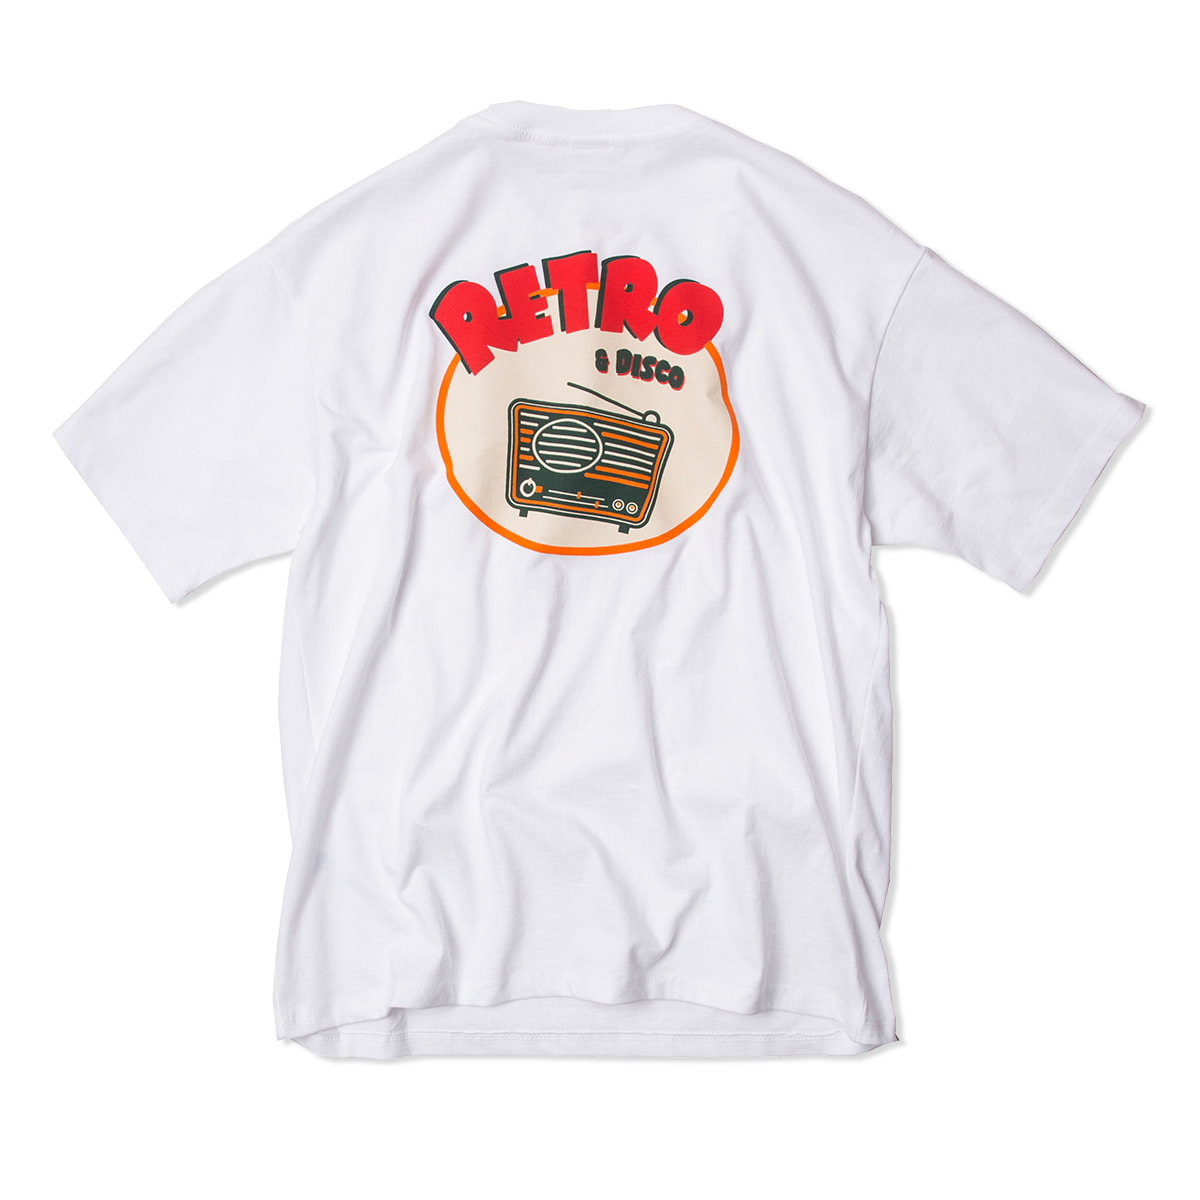 샌드파이퍼 RETRO T SHIRTS_White